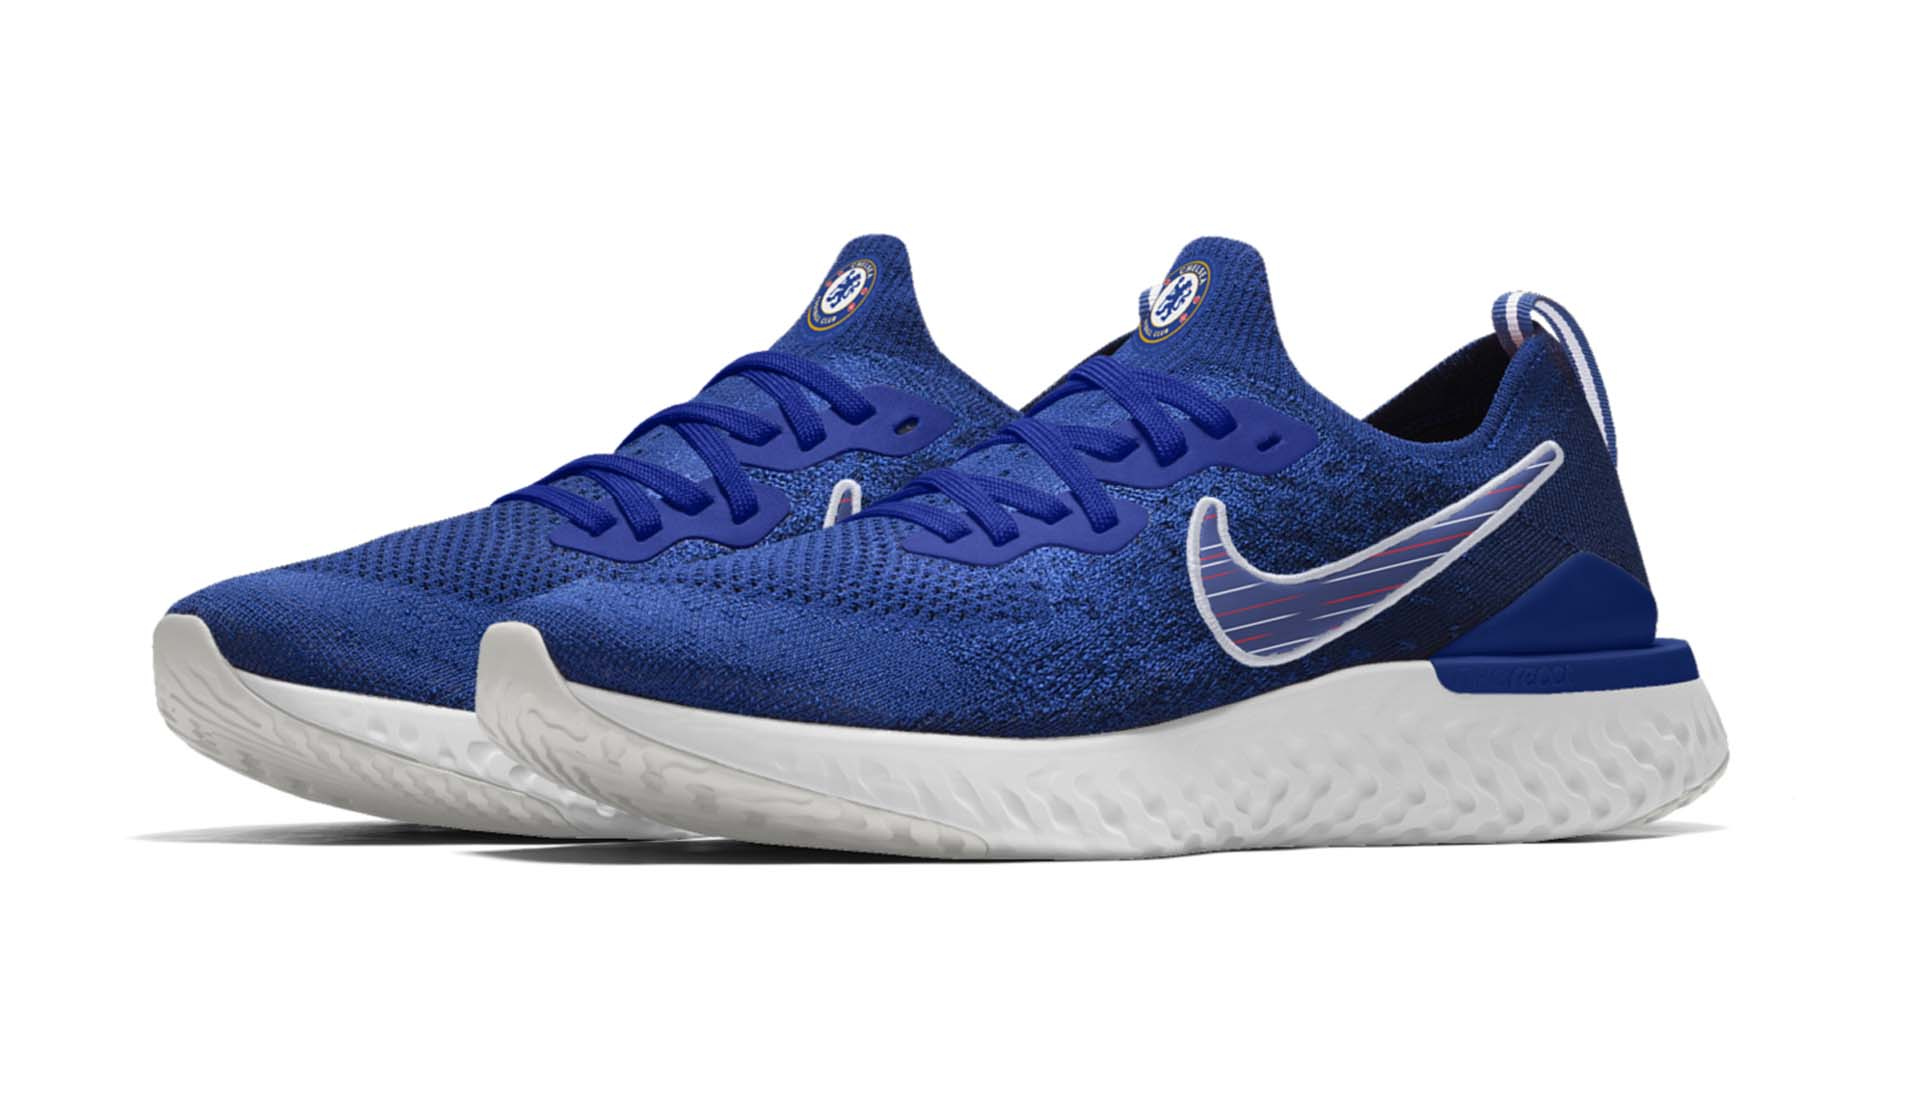 fc47d094f6383 Nike Launch Chelsea   Spurs Epic React Flyknit 2 Options - SoccerBible